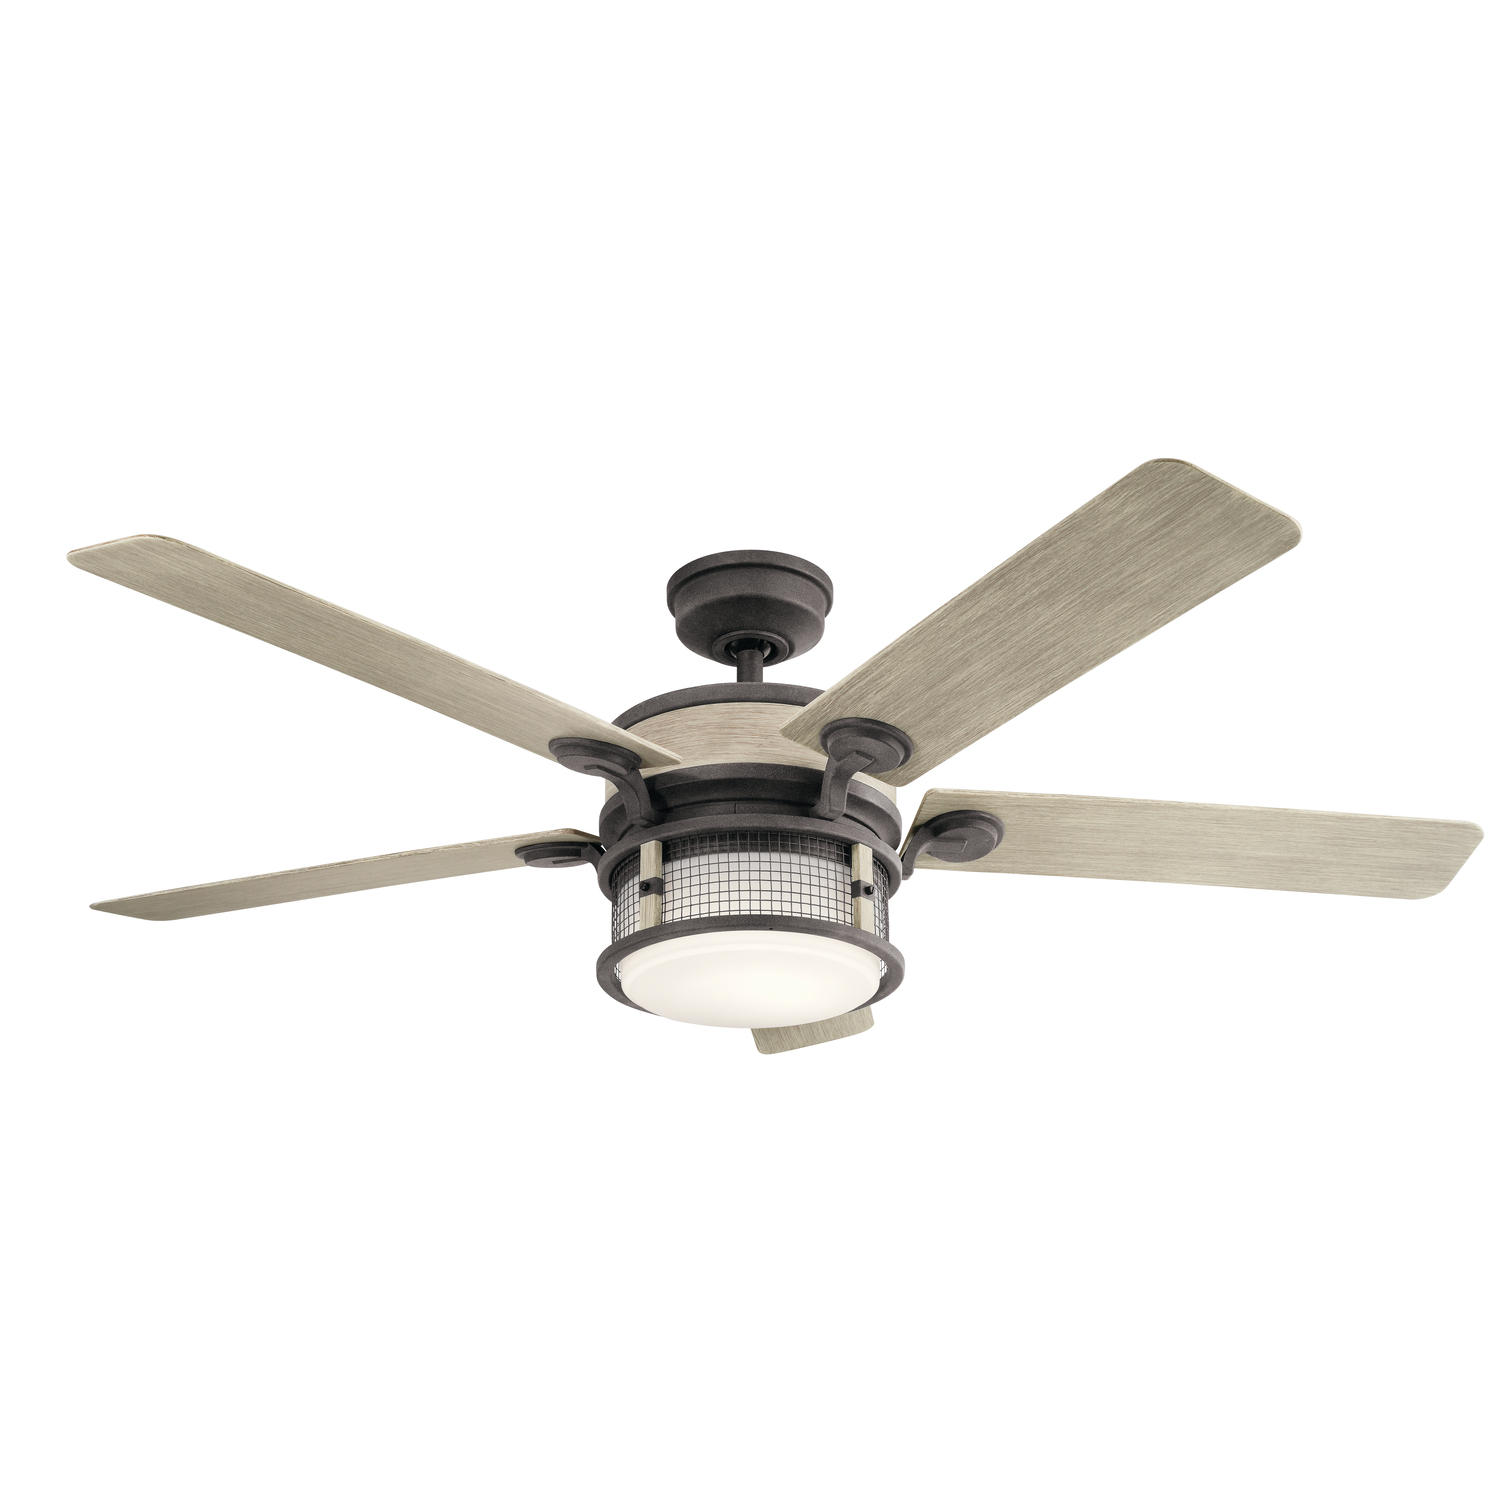 60 inchCeiling Fan from the Ahrendale collection by Kichler 310170WZC